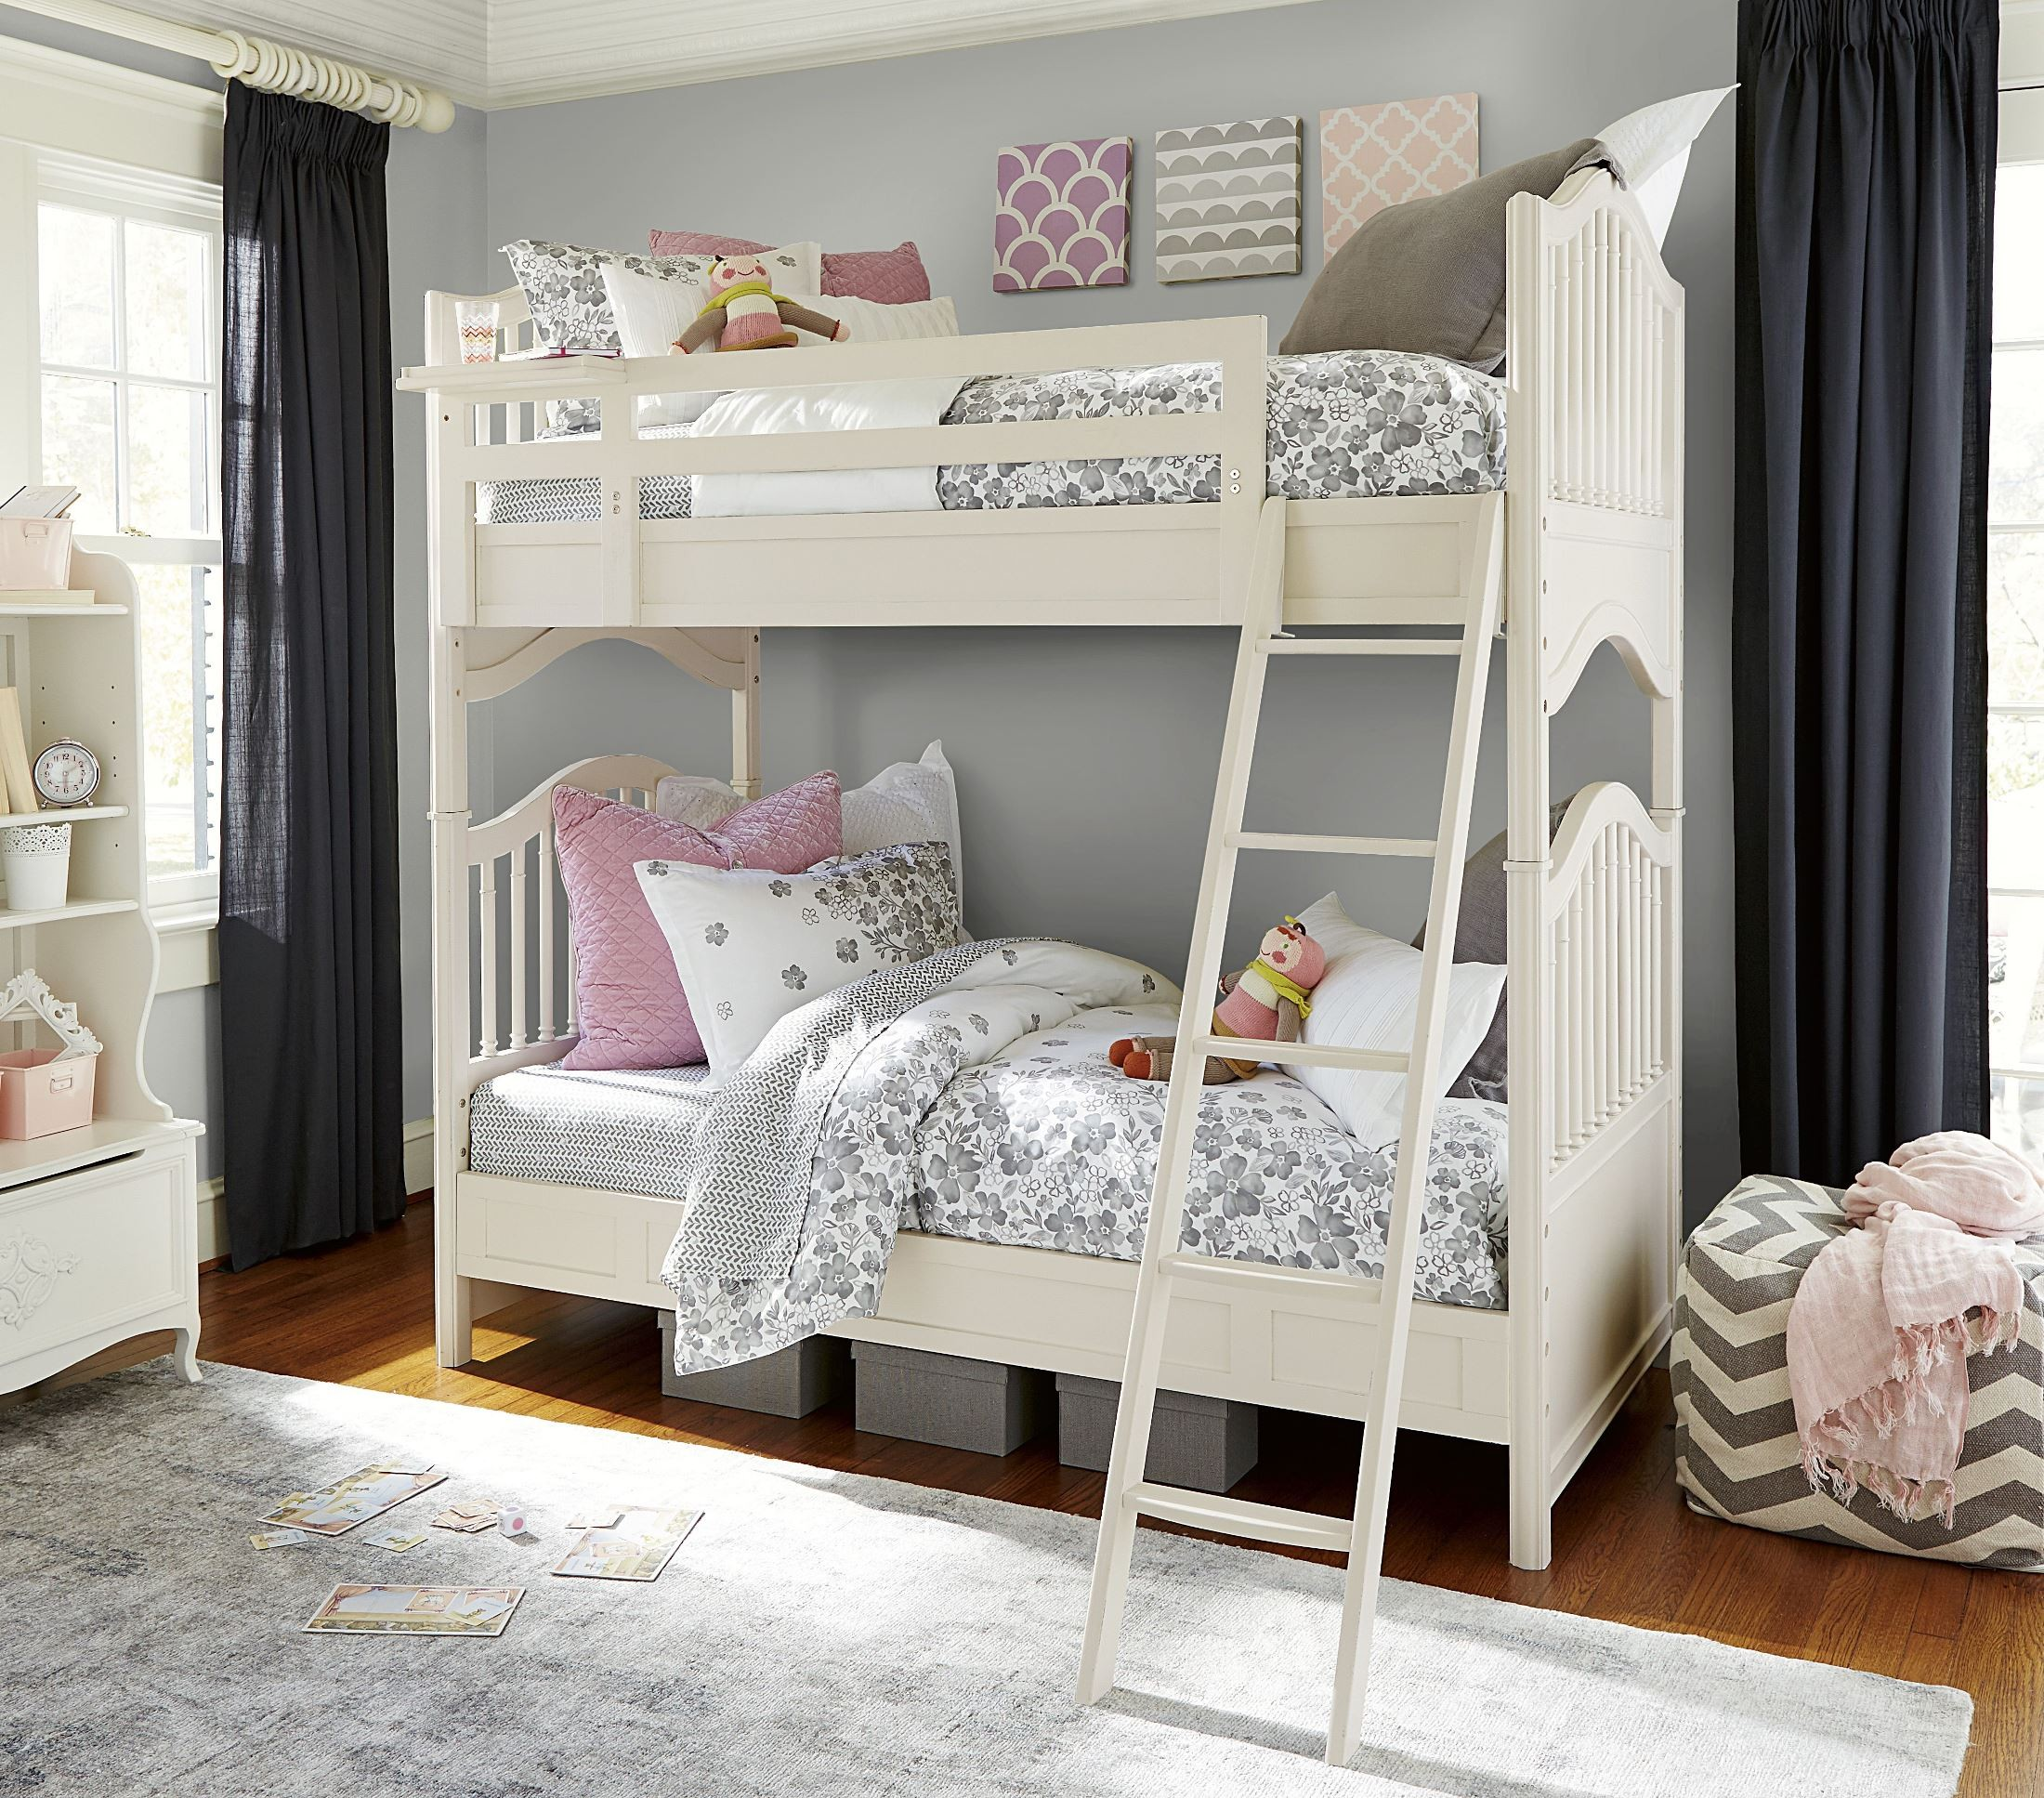 Genevieve French White Bunk Bedroom Set From Smart Stuff 434a530 Coleman Furniture